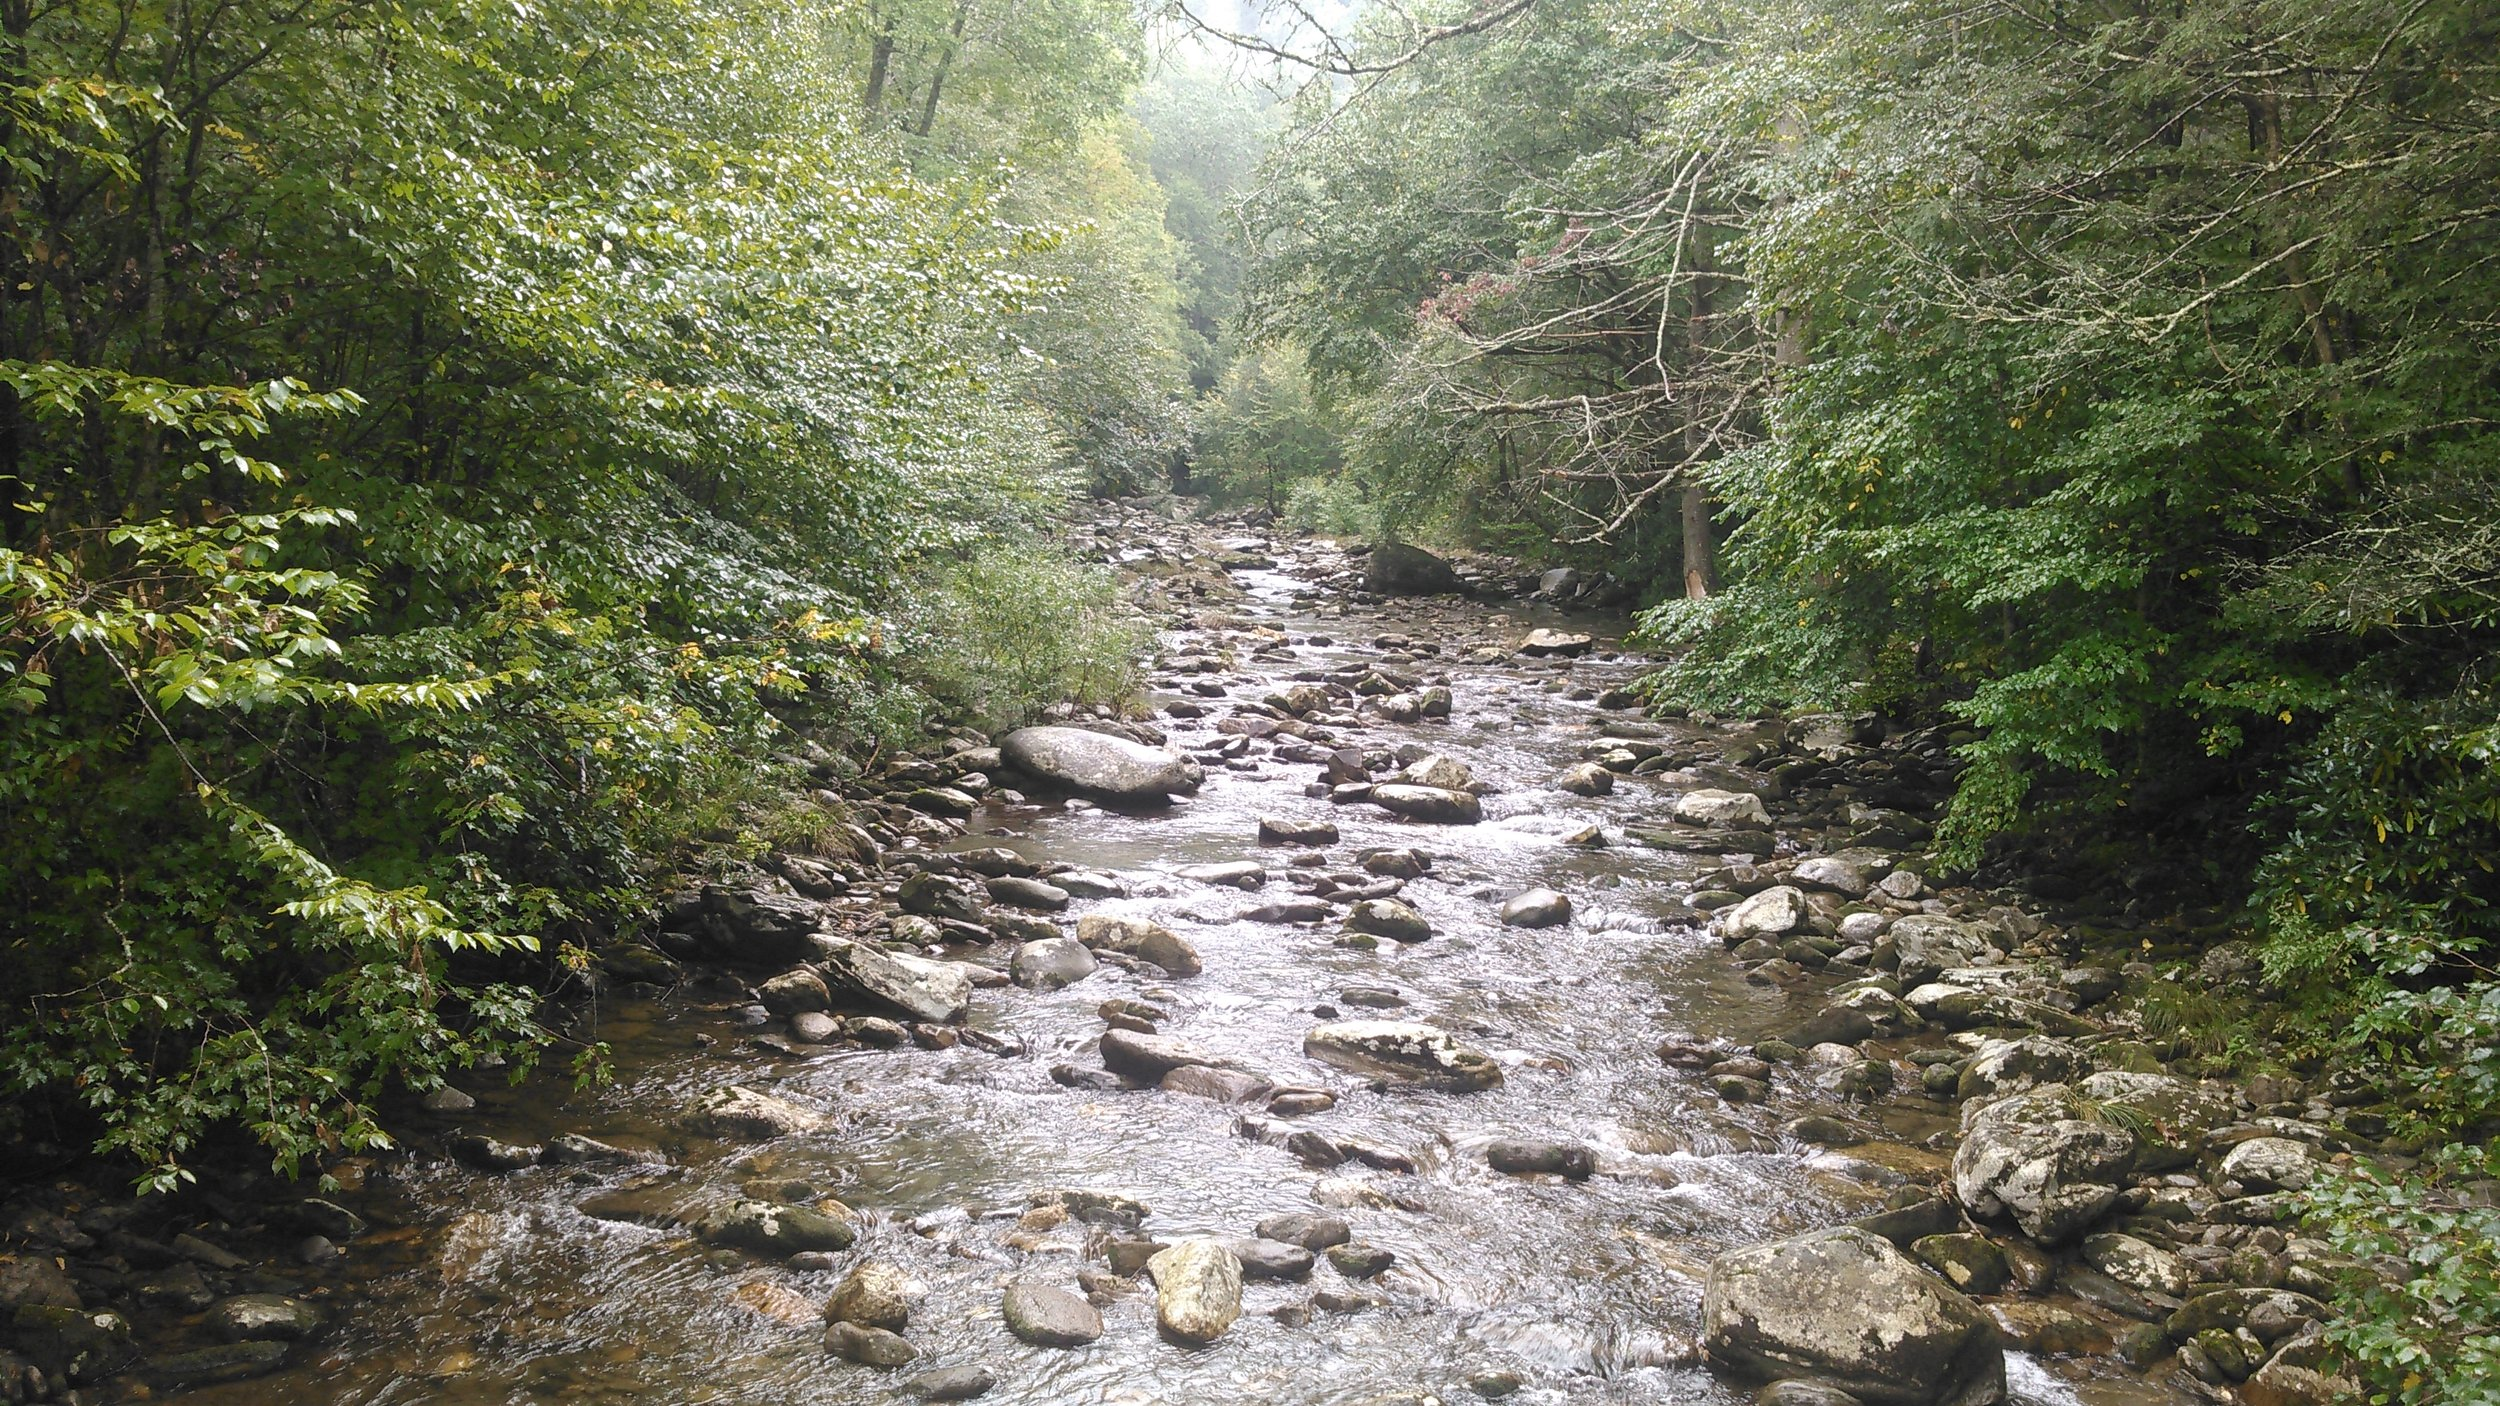 The creeks in this area are absolutely breath taking!